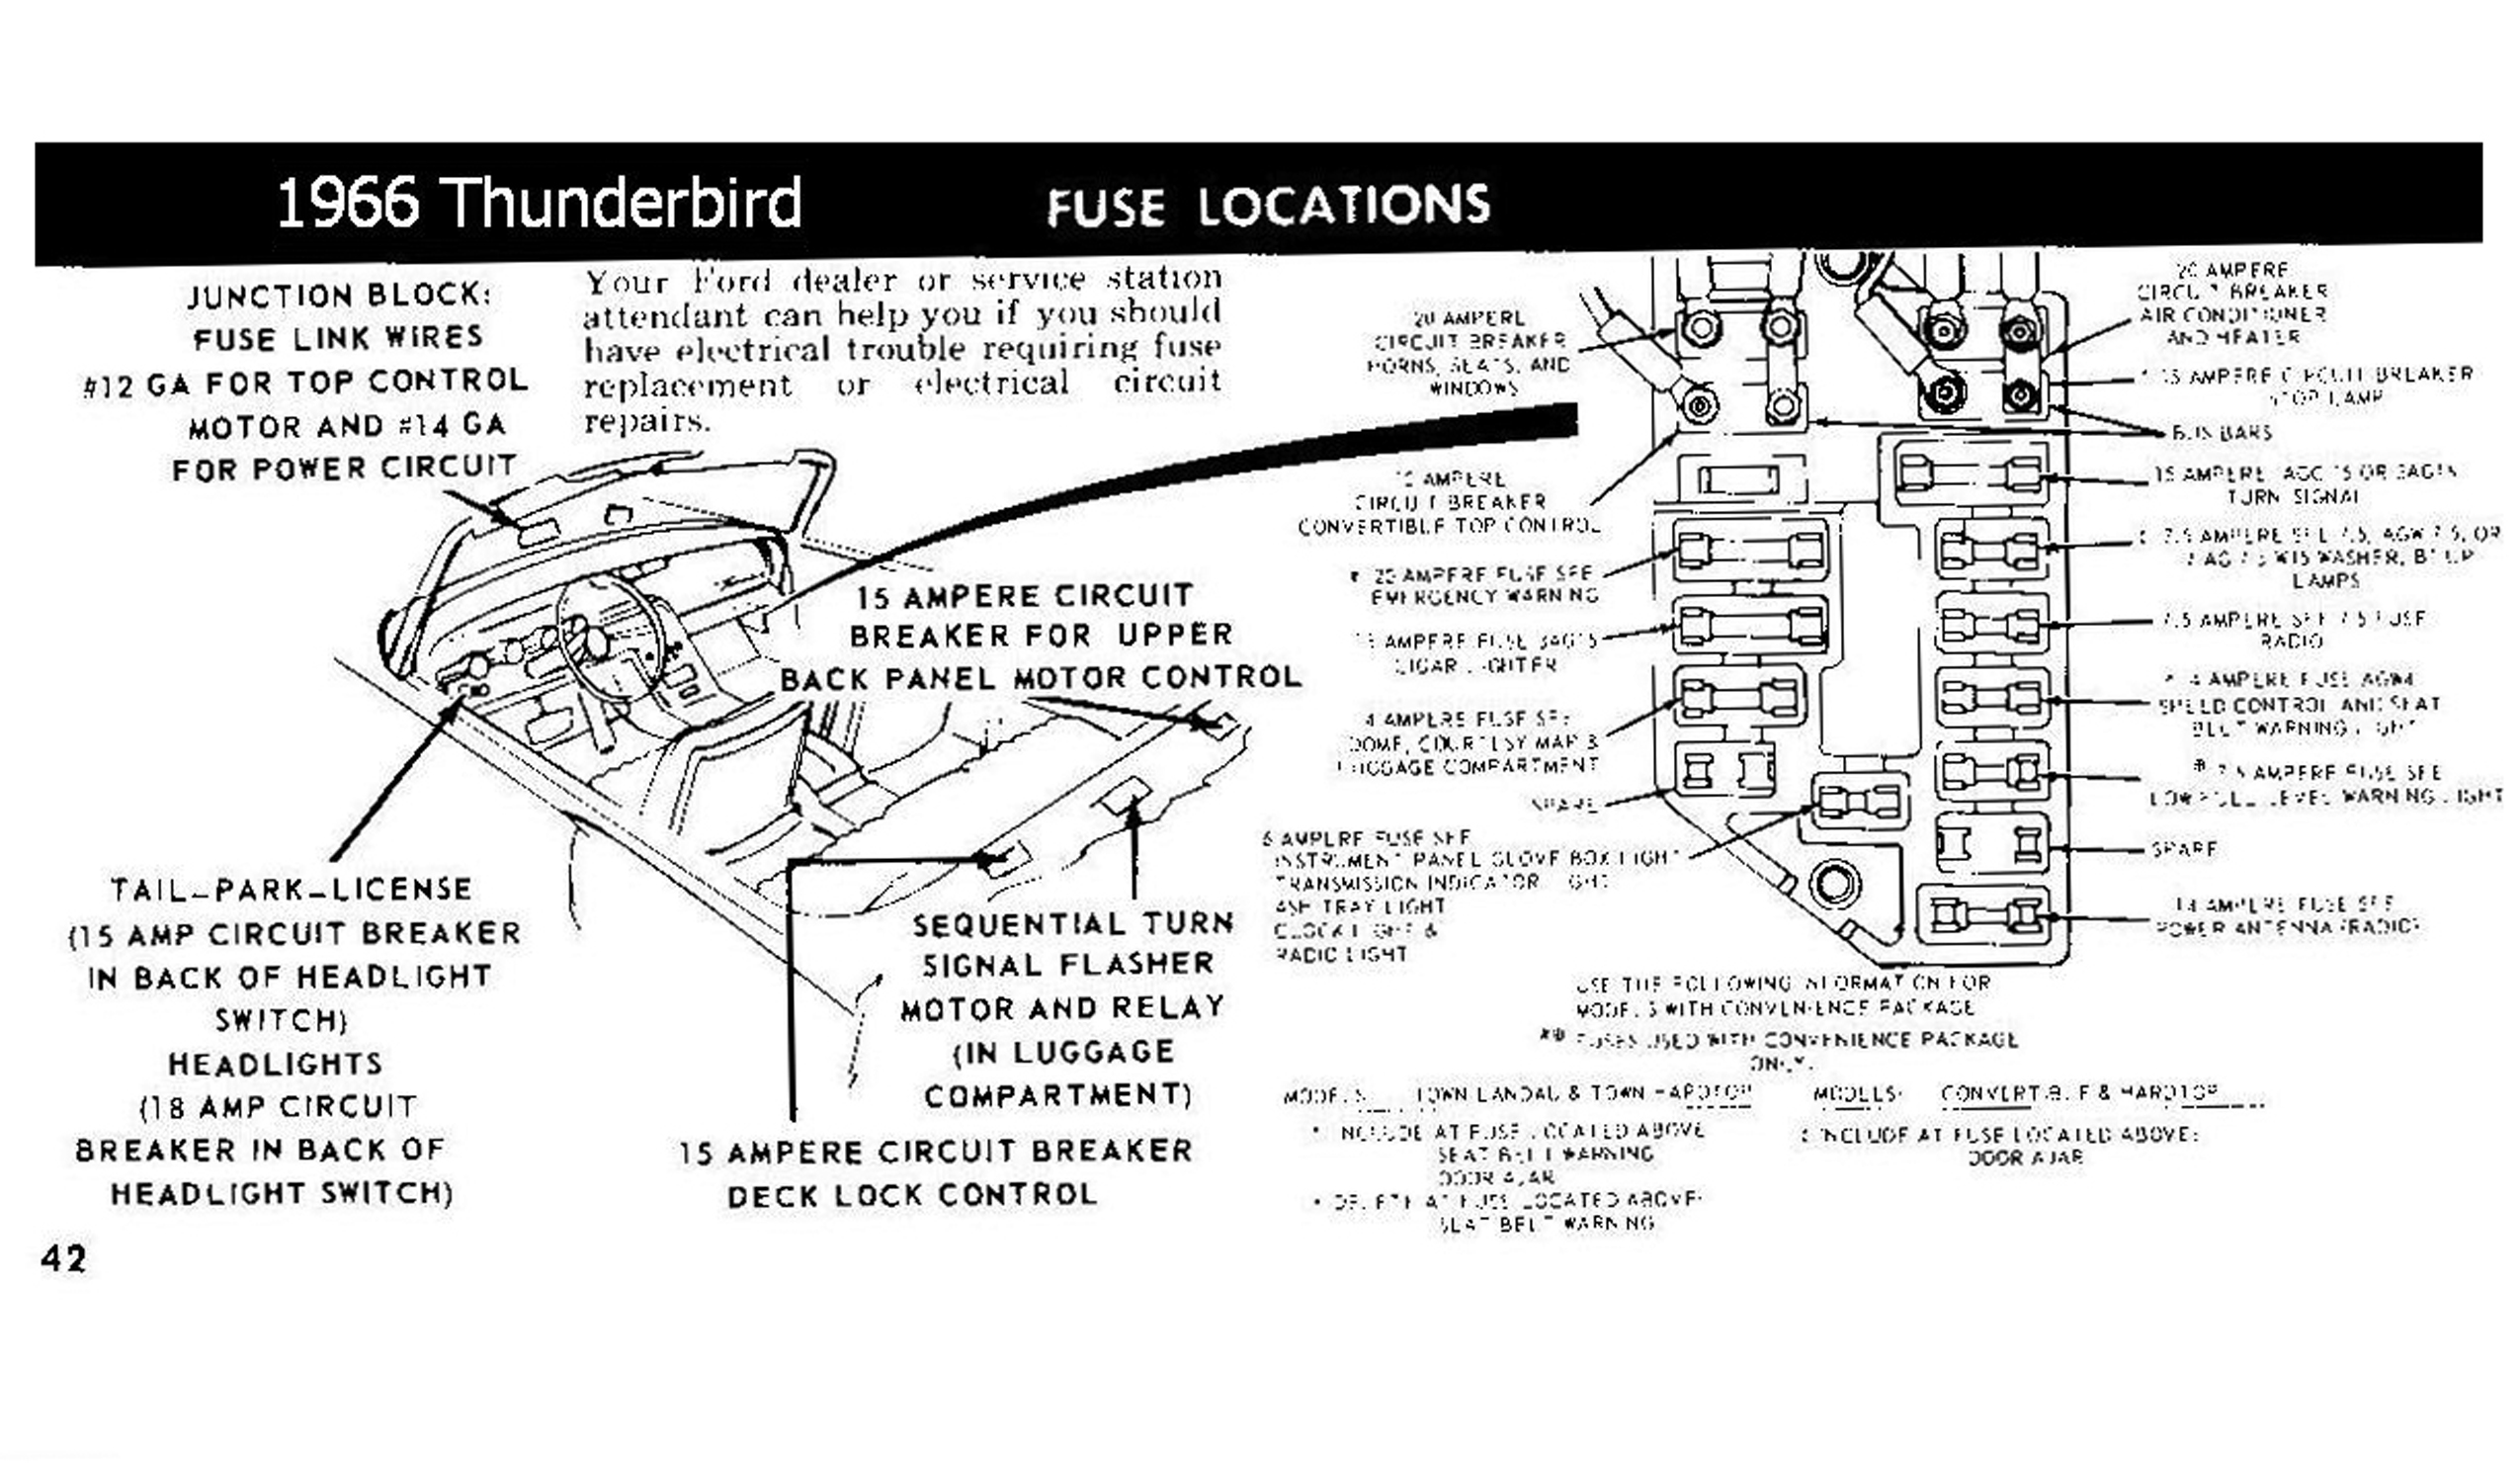 [DIAGRAM] 1994 Ford Thunderbird Fuse Diagram FULL Version